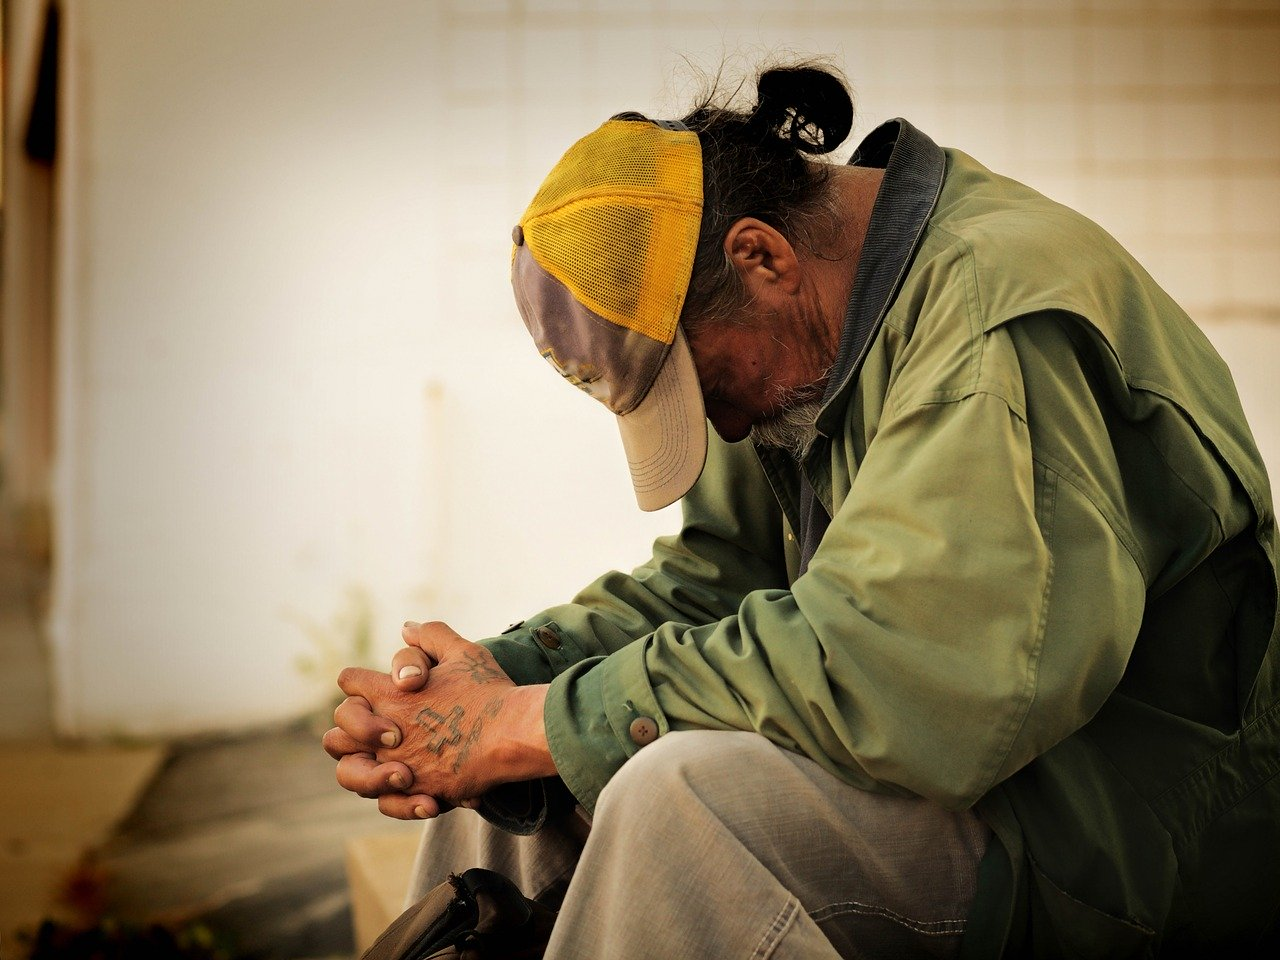 Image of a man bowed in prayer